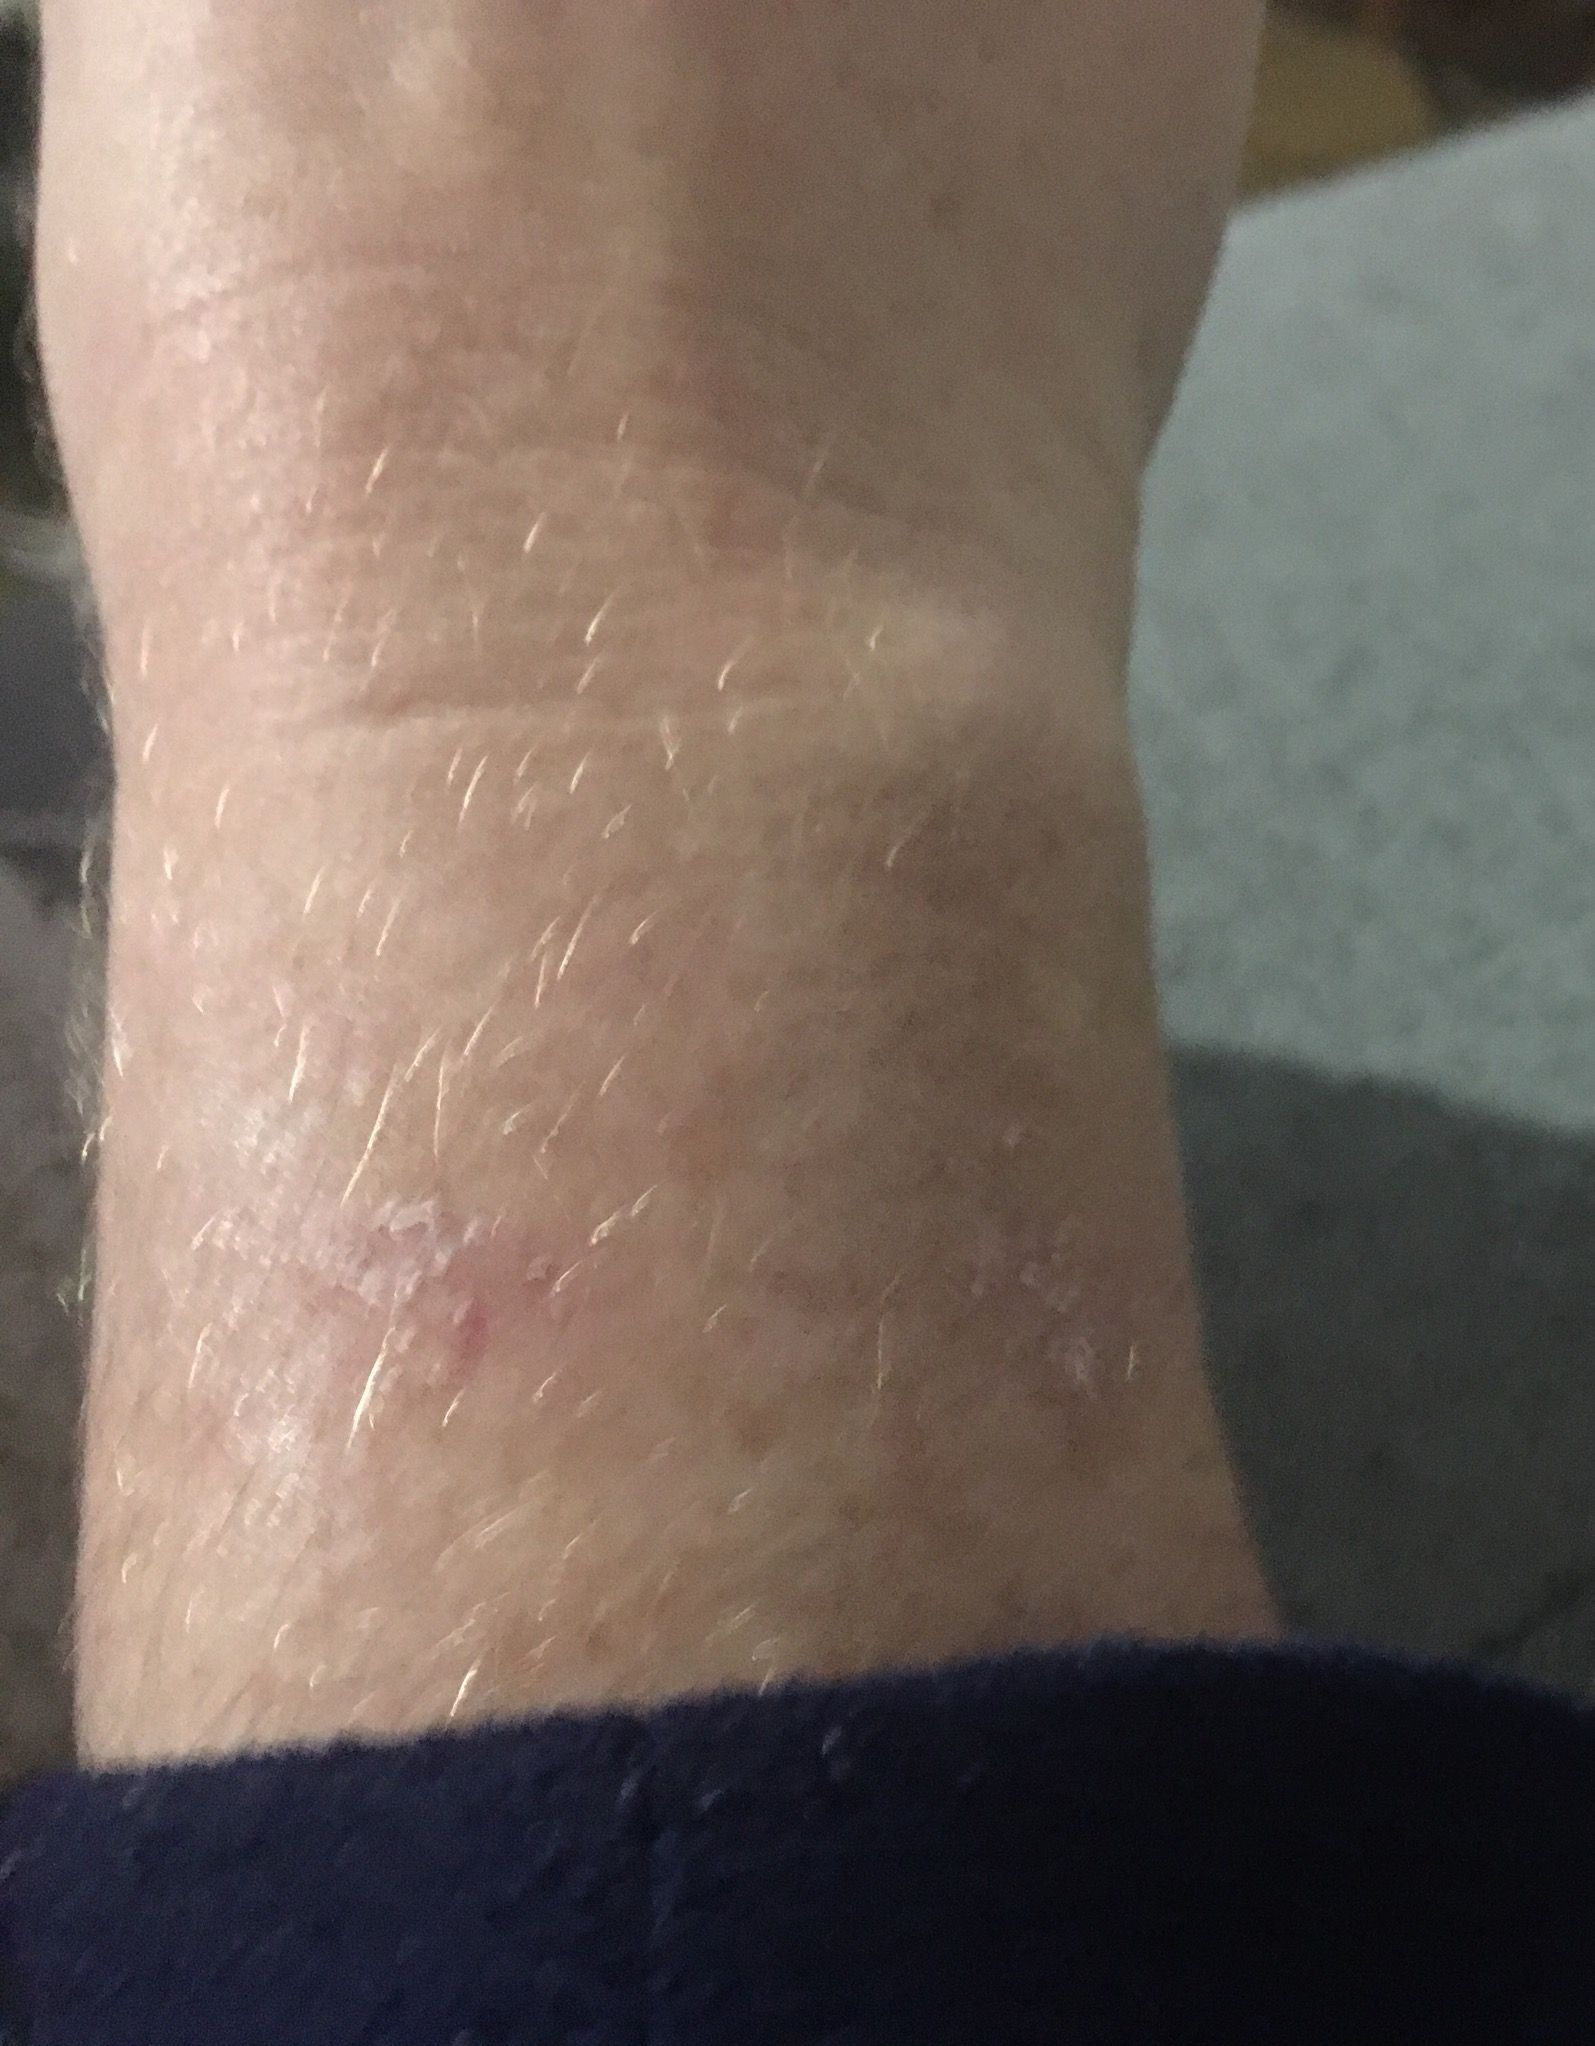 Experiencing skin discomfort, irritation or wrist/    - Page